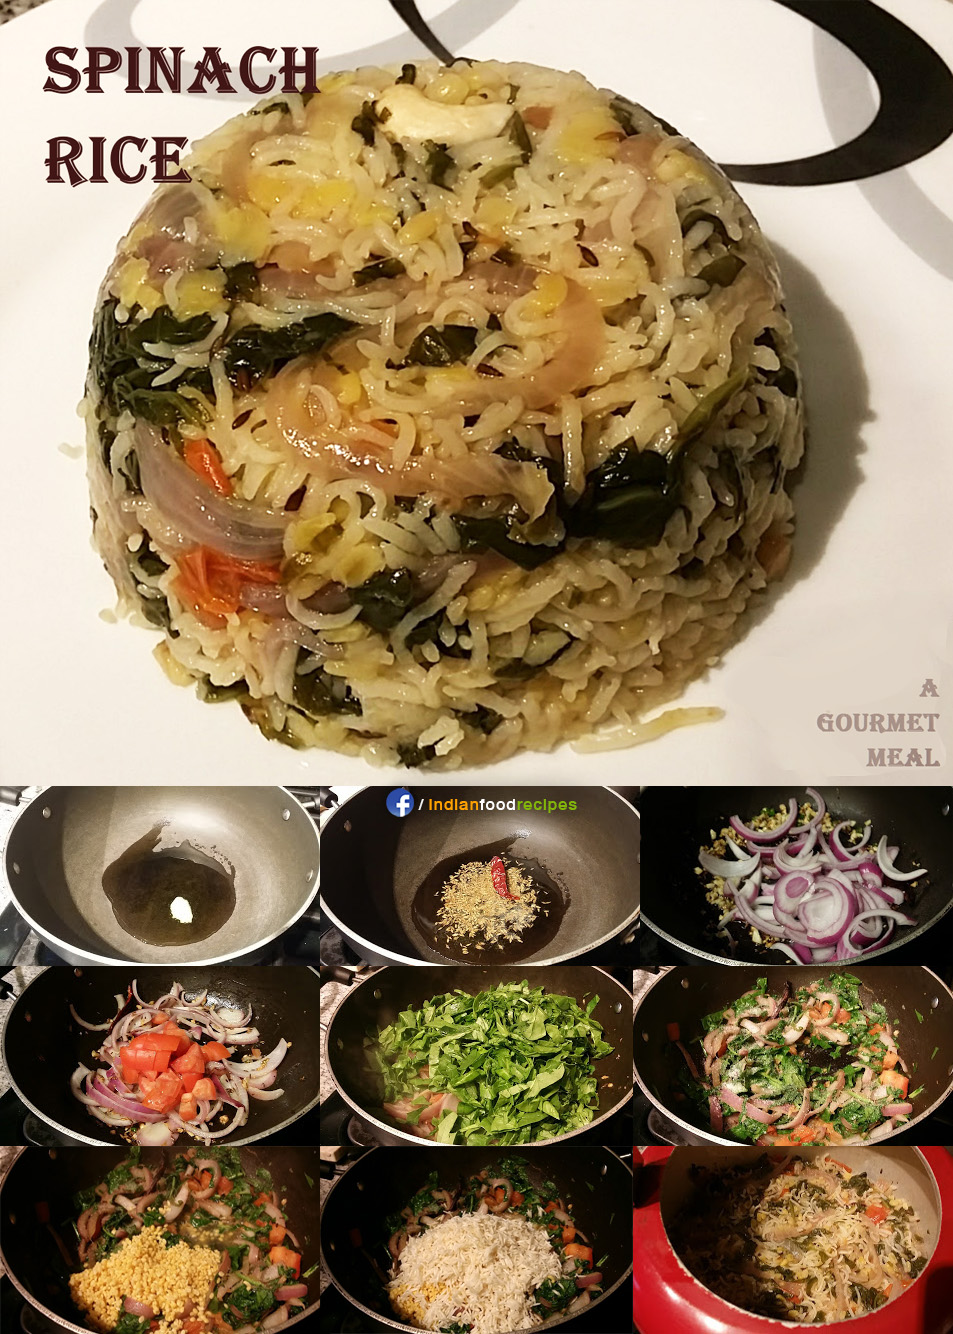 Spinach Rice / Palak Rice recipe step by step